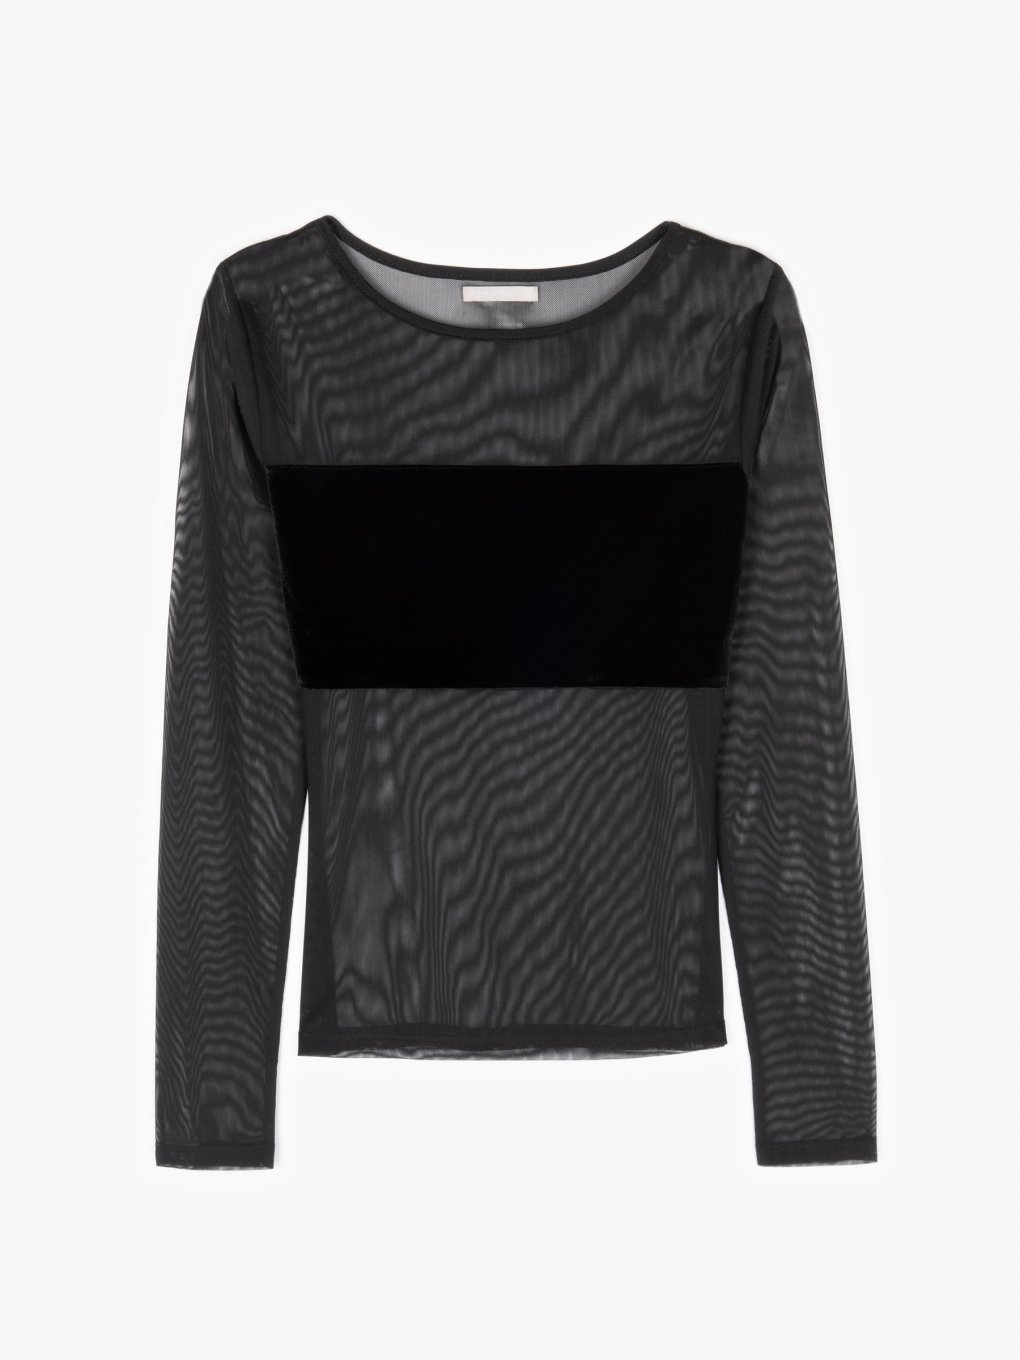 Combined top with mesh